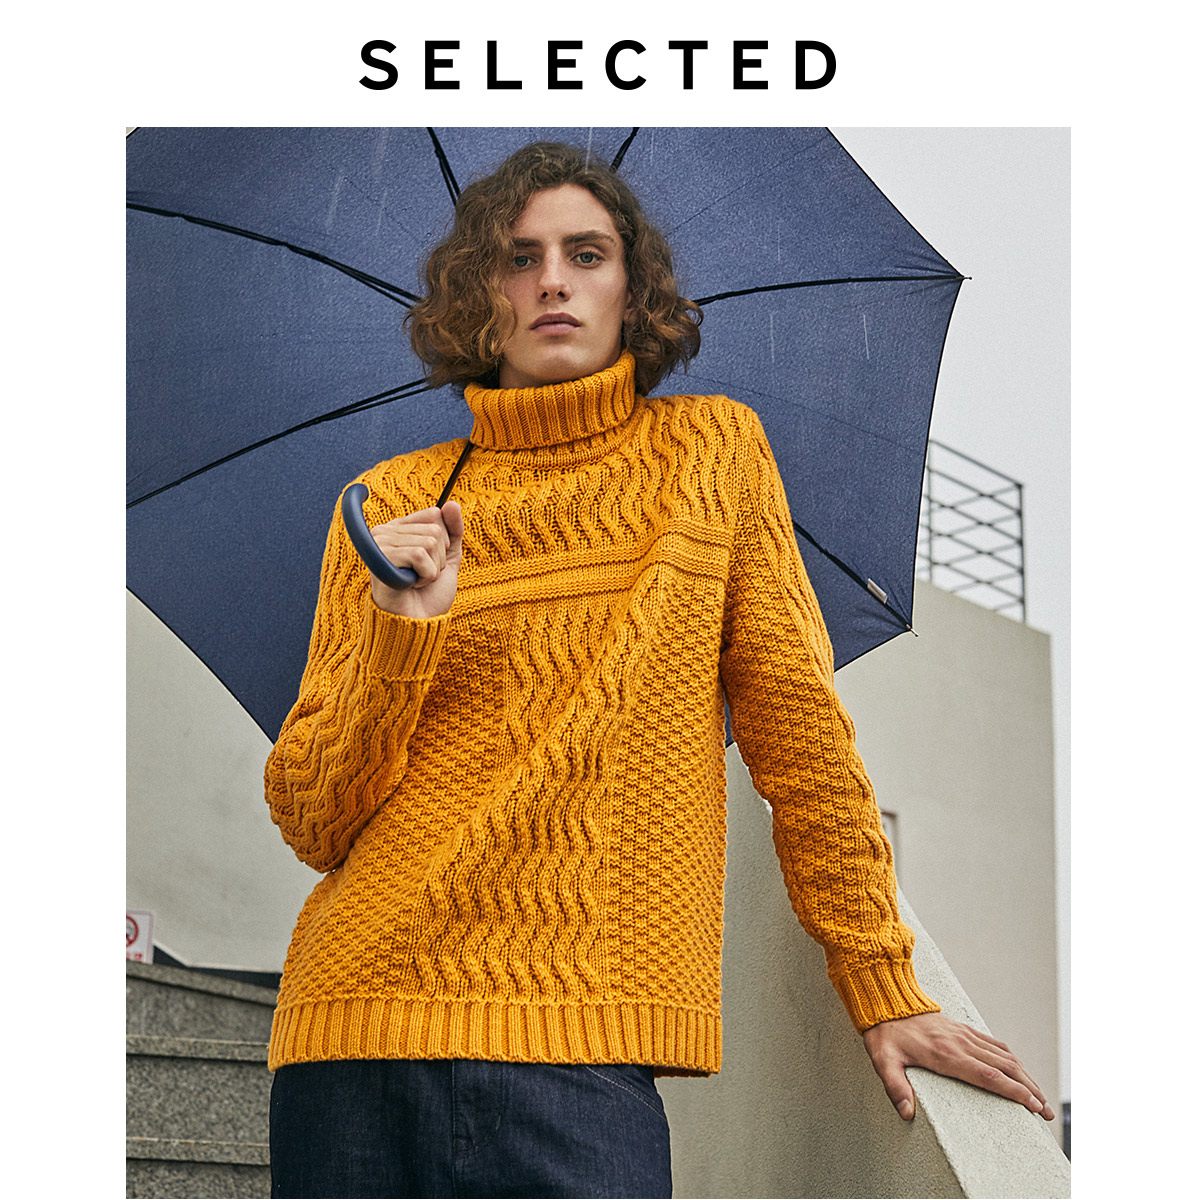 Image 3 - SELECTED Men's Autumn & Winter High necked Woolen Knitted Sweater L419424551-in Pullovers from Men's Clothing